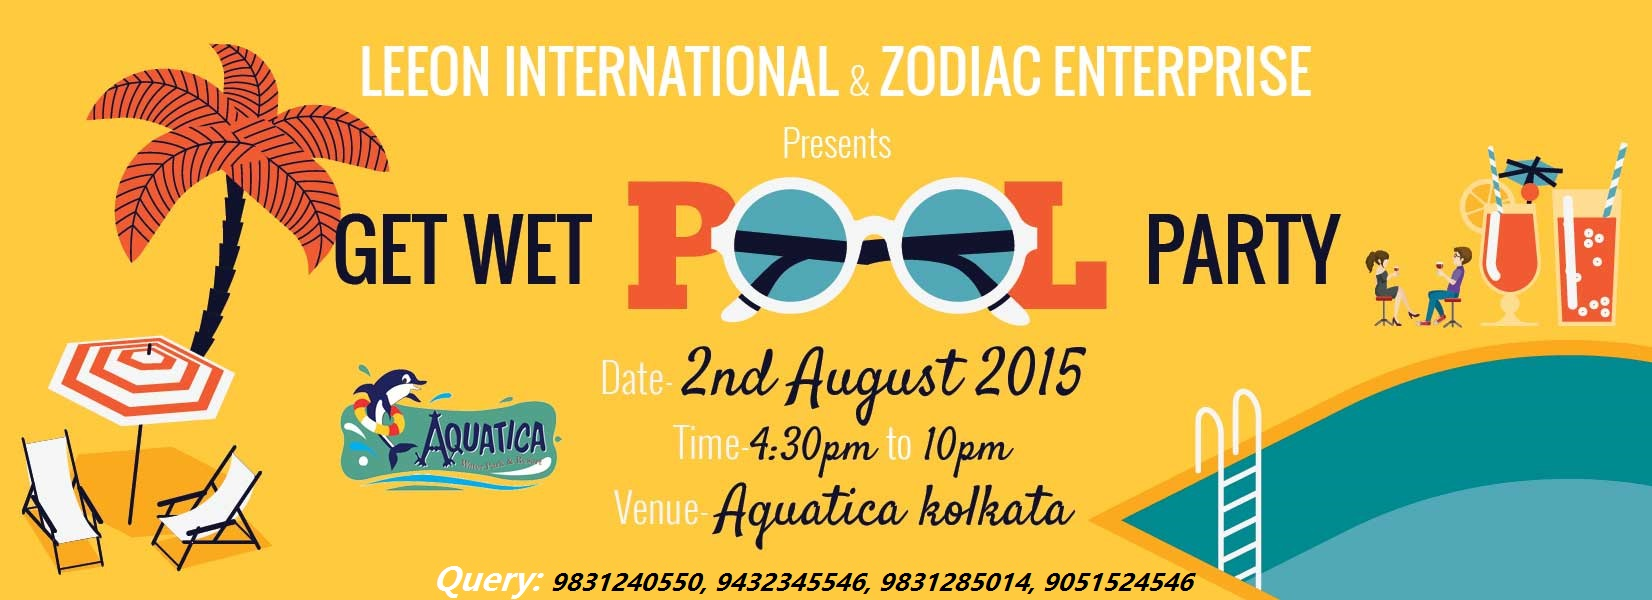 Book Online Tickets for GET WET POOL PARTY, Kolkata. Leeon International Management present GET WET POOL PARTY on 2nd August 2015 Friendship Day at Aquatica Kolkata, India. Party will be start at 4:30 pm - 10:00 pm.Fun water DJs dance liquer every thing will be there. Please join us and